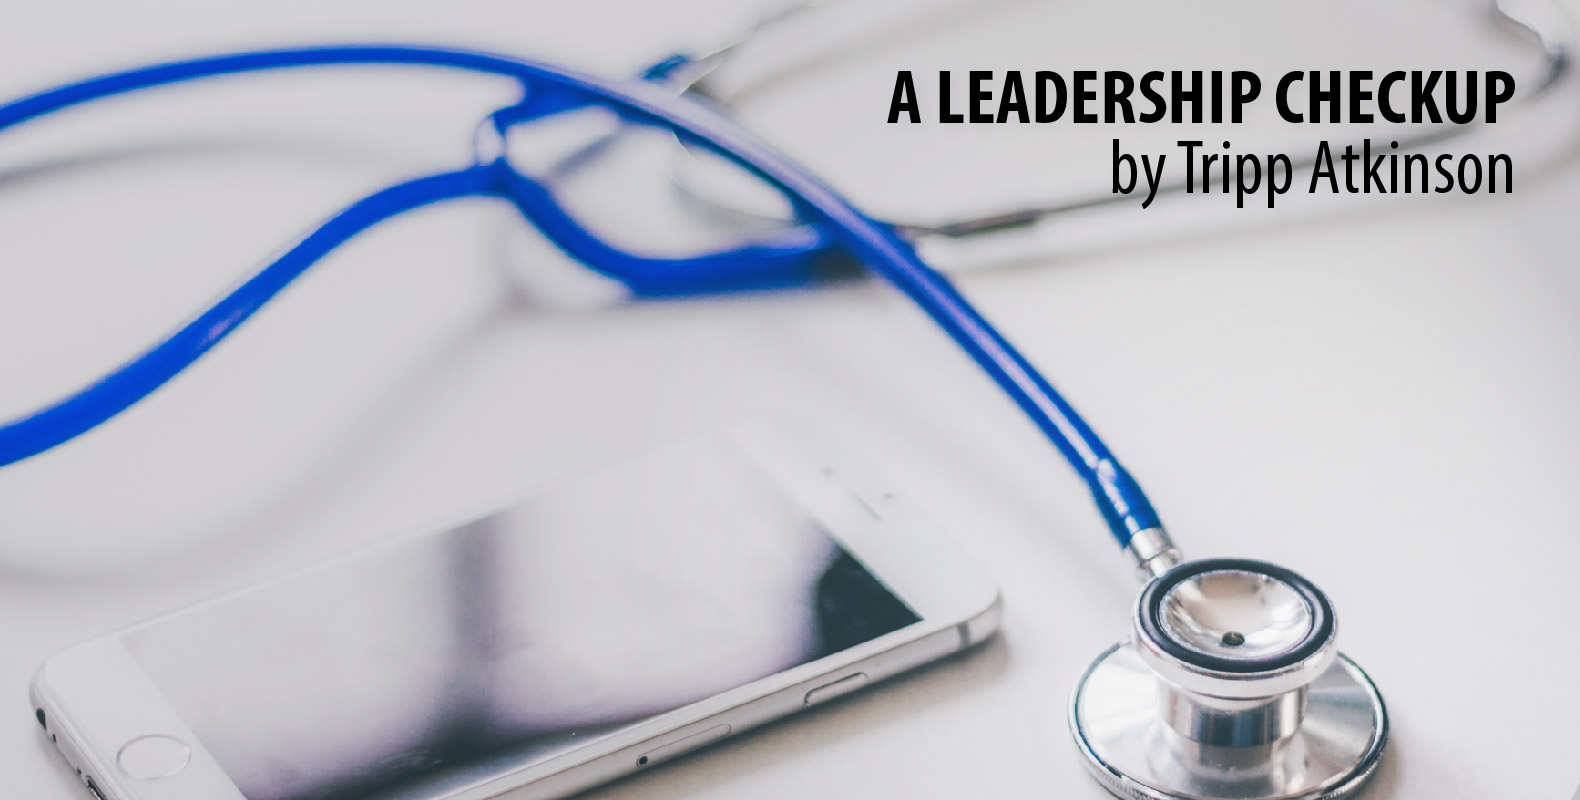 A Leadership Checkup (A health evaluation of effective leaders) by Tripp Atkinson